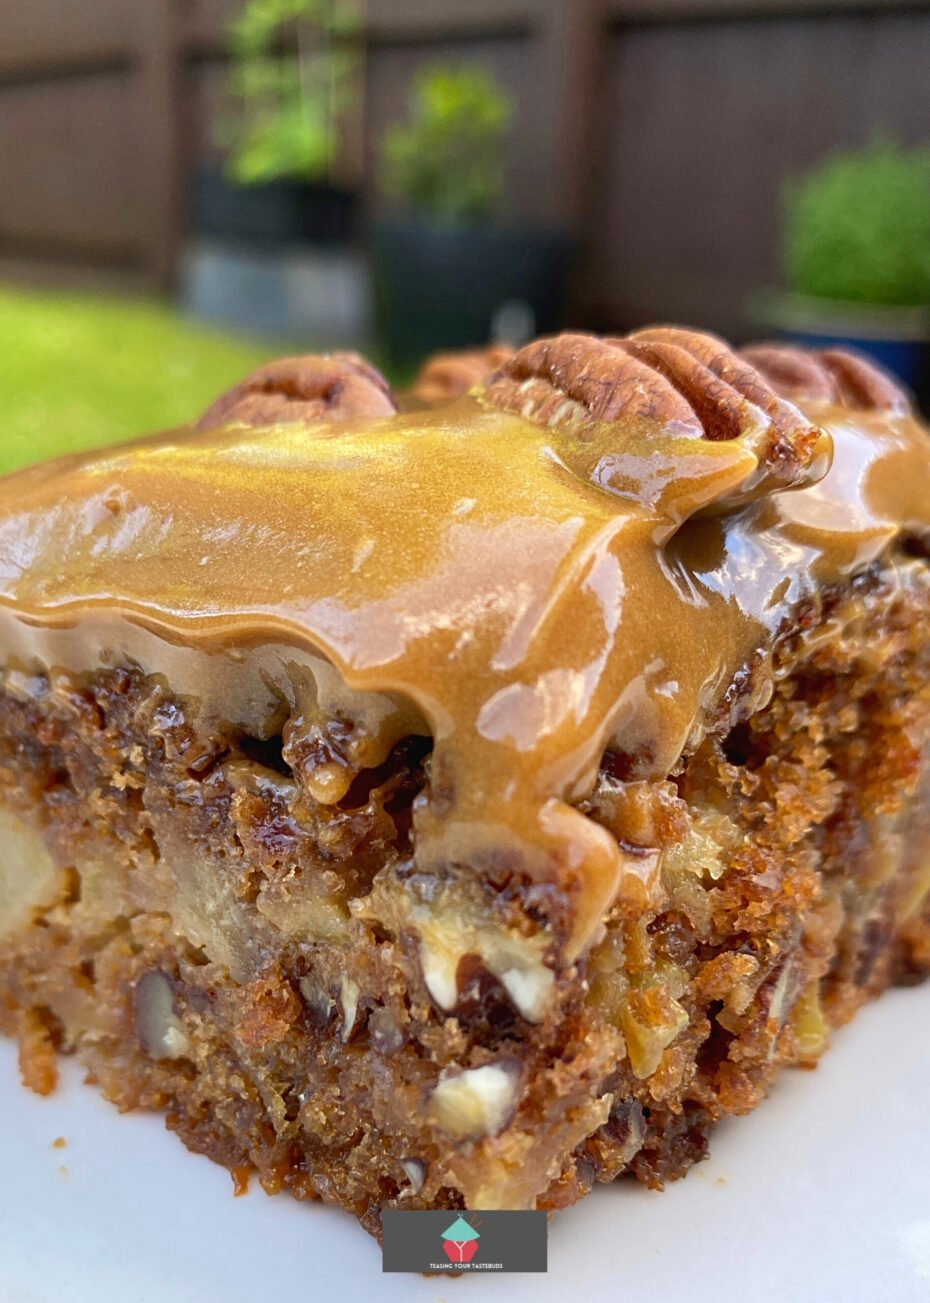 Old Fashioned Date, Apple, and Walnut Cake. This old-fashioned date, apple, and walnut cake is easy to make, moist, and loaded with apple and dates keeping it sweet and soft. The walnuts add a great texture and crunch. Salted caramel frosting adds a perfect finish to this delicious cake.